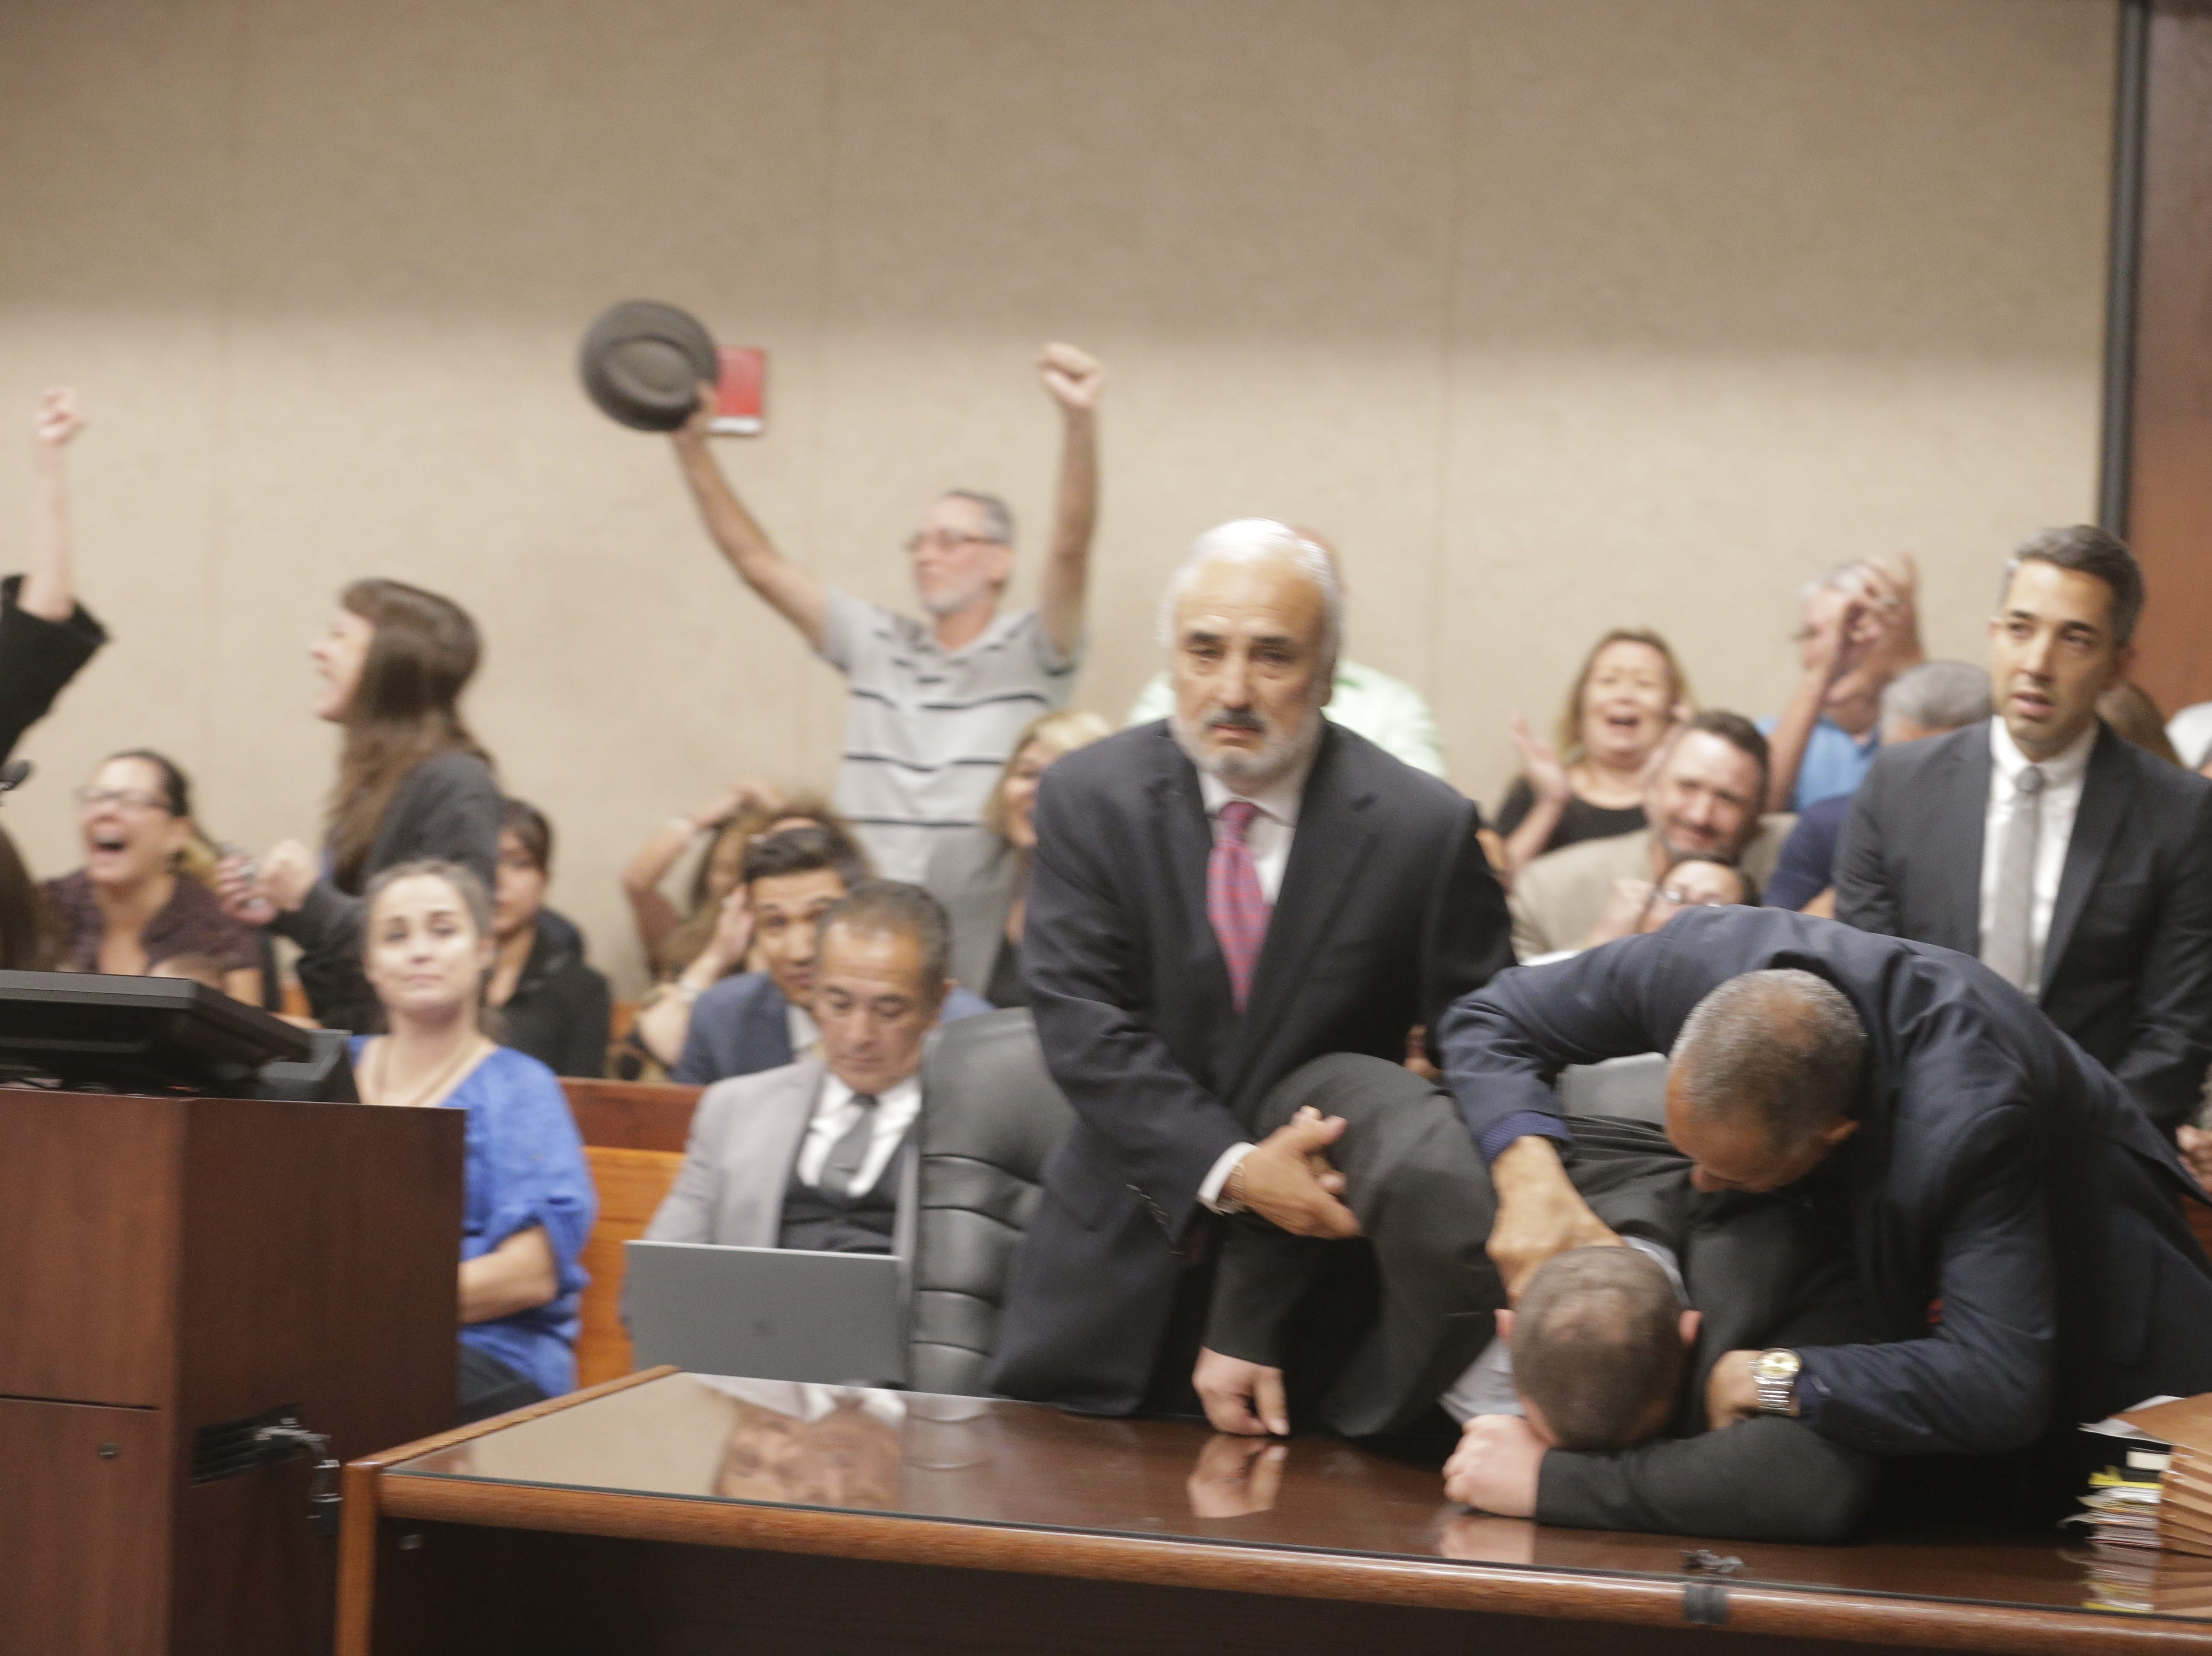 Daniel Villegas' family and supporters cheered as the verdict was read.